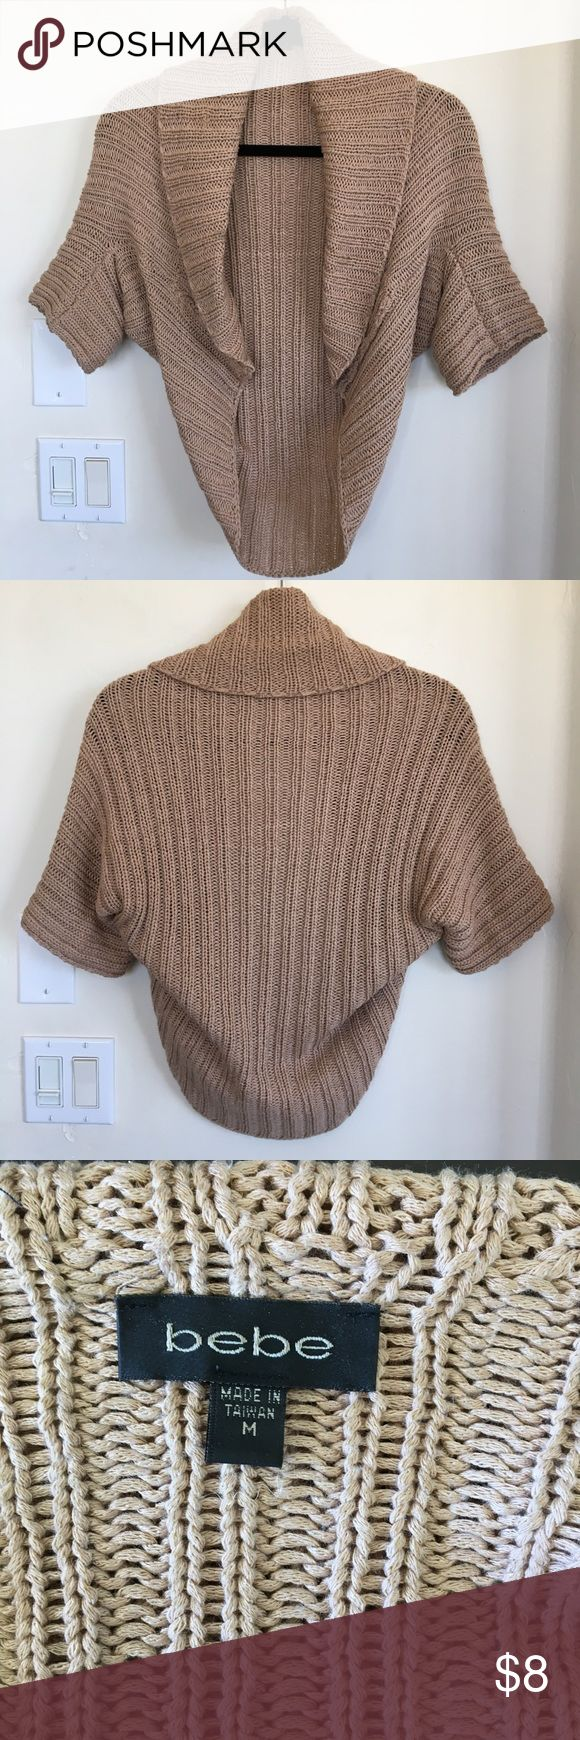 Bebe shrug sweater. Women's size ( M ) Bebe shrug sweater. Women's size ( M ) Great condition. Bebe Sweaters Shrugs & Ponchos